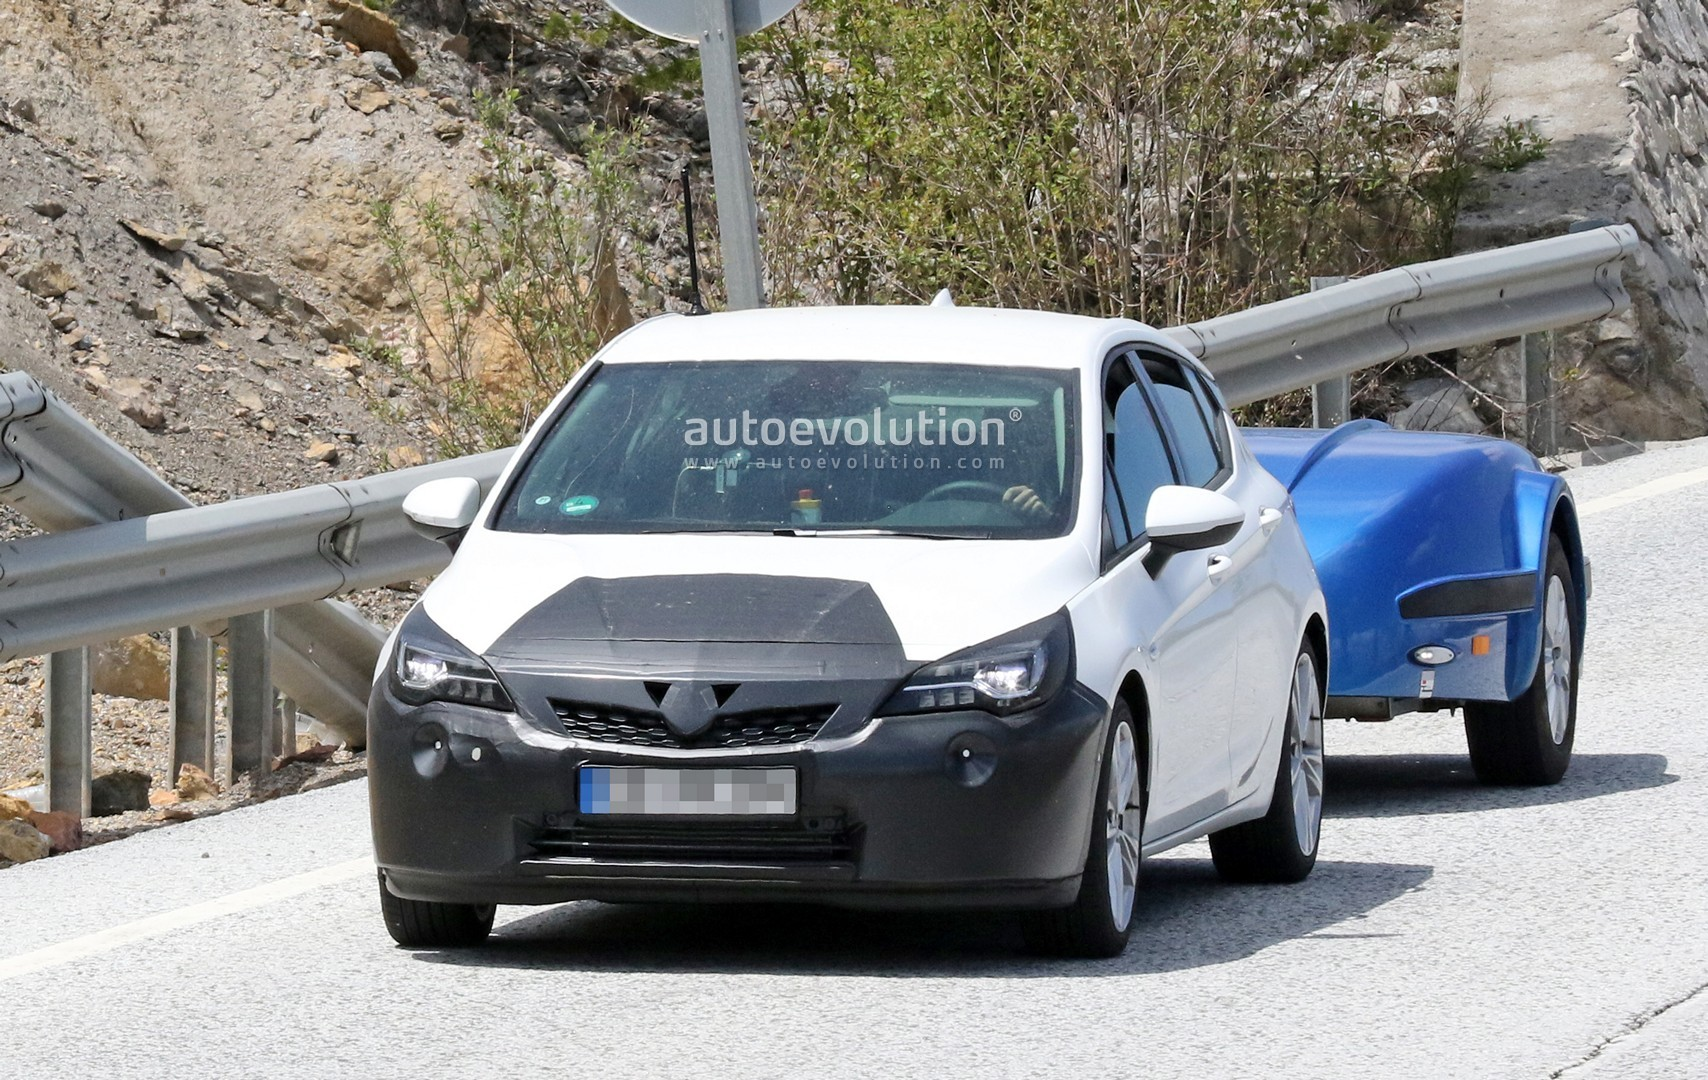 2019 opel astra facelift spied undergoing hot weather testing with peugeot 3008 autoevolution. Black Bedroom Furniture Sets. Home Design Ideas